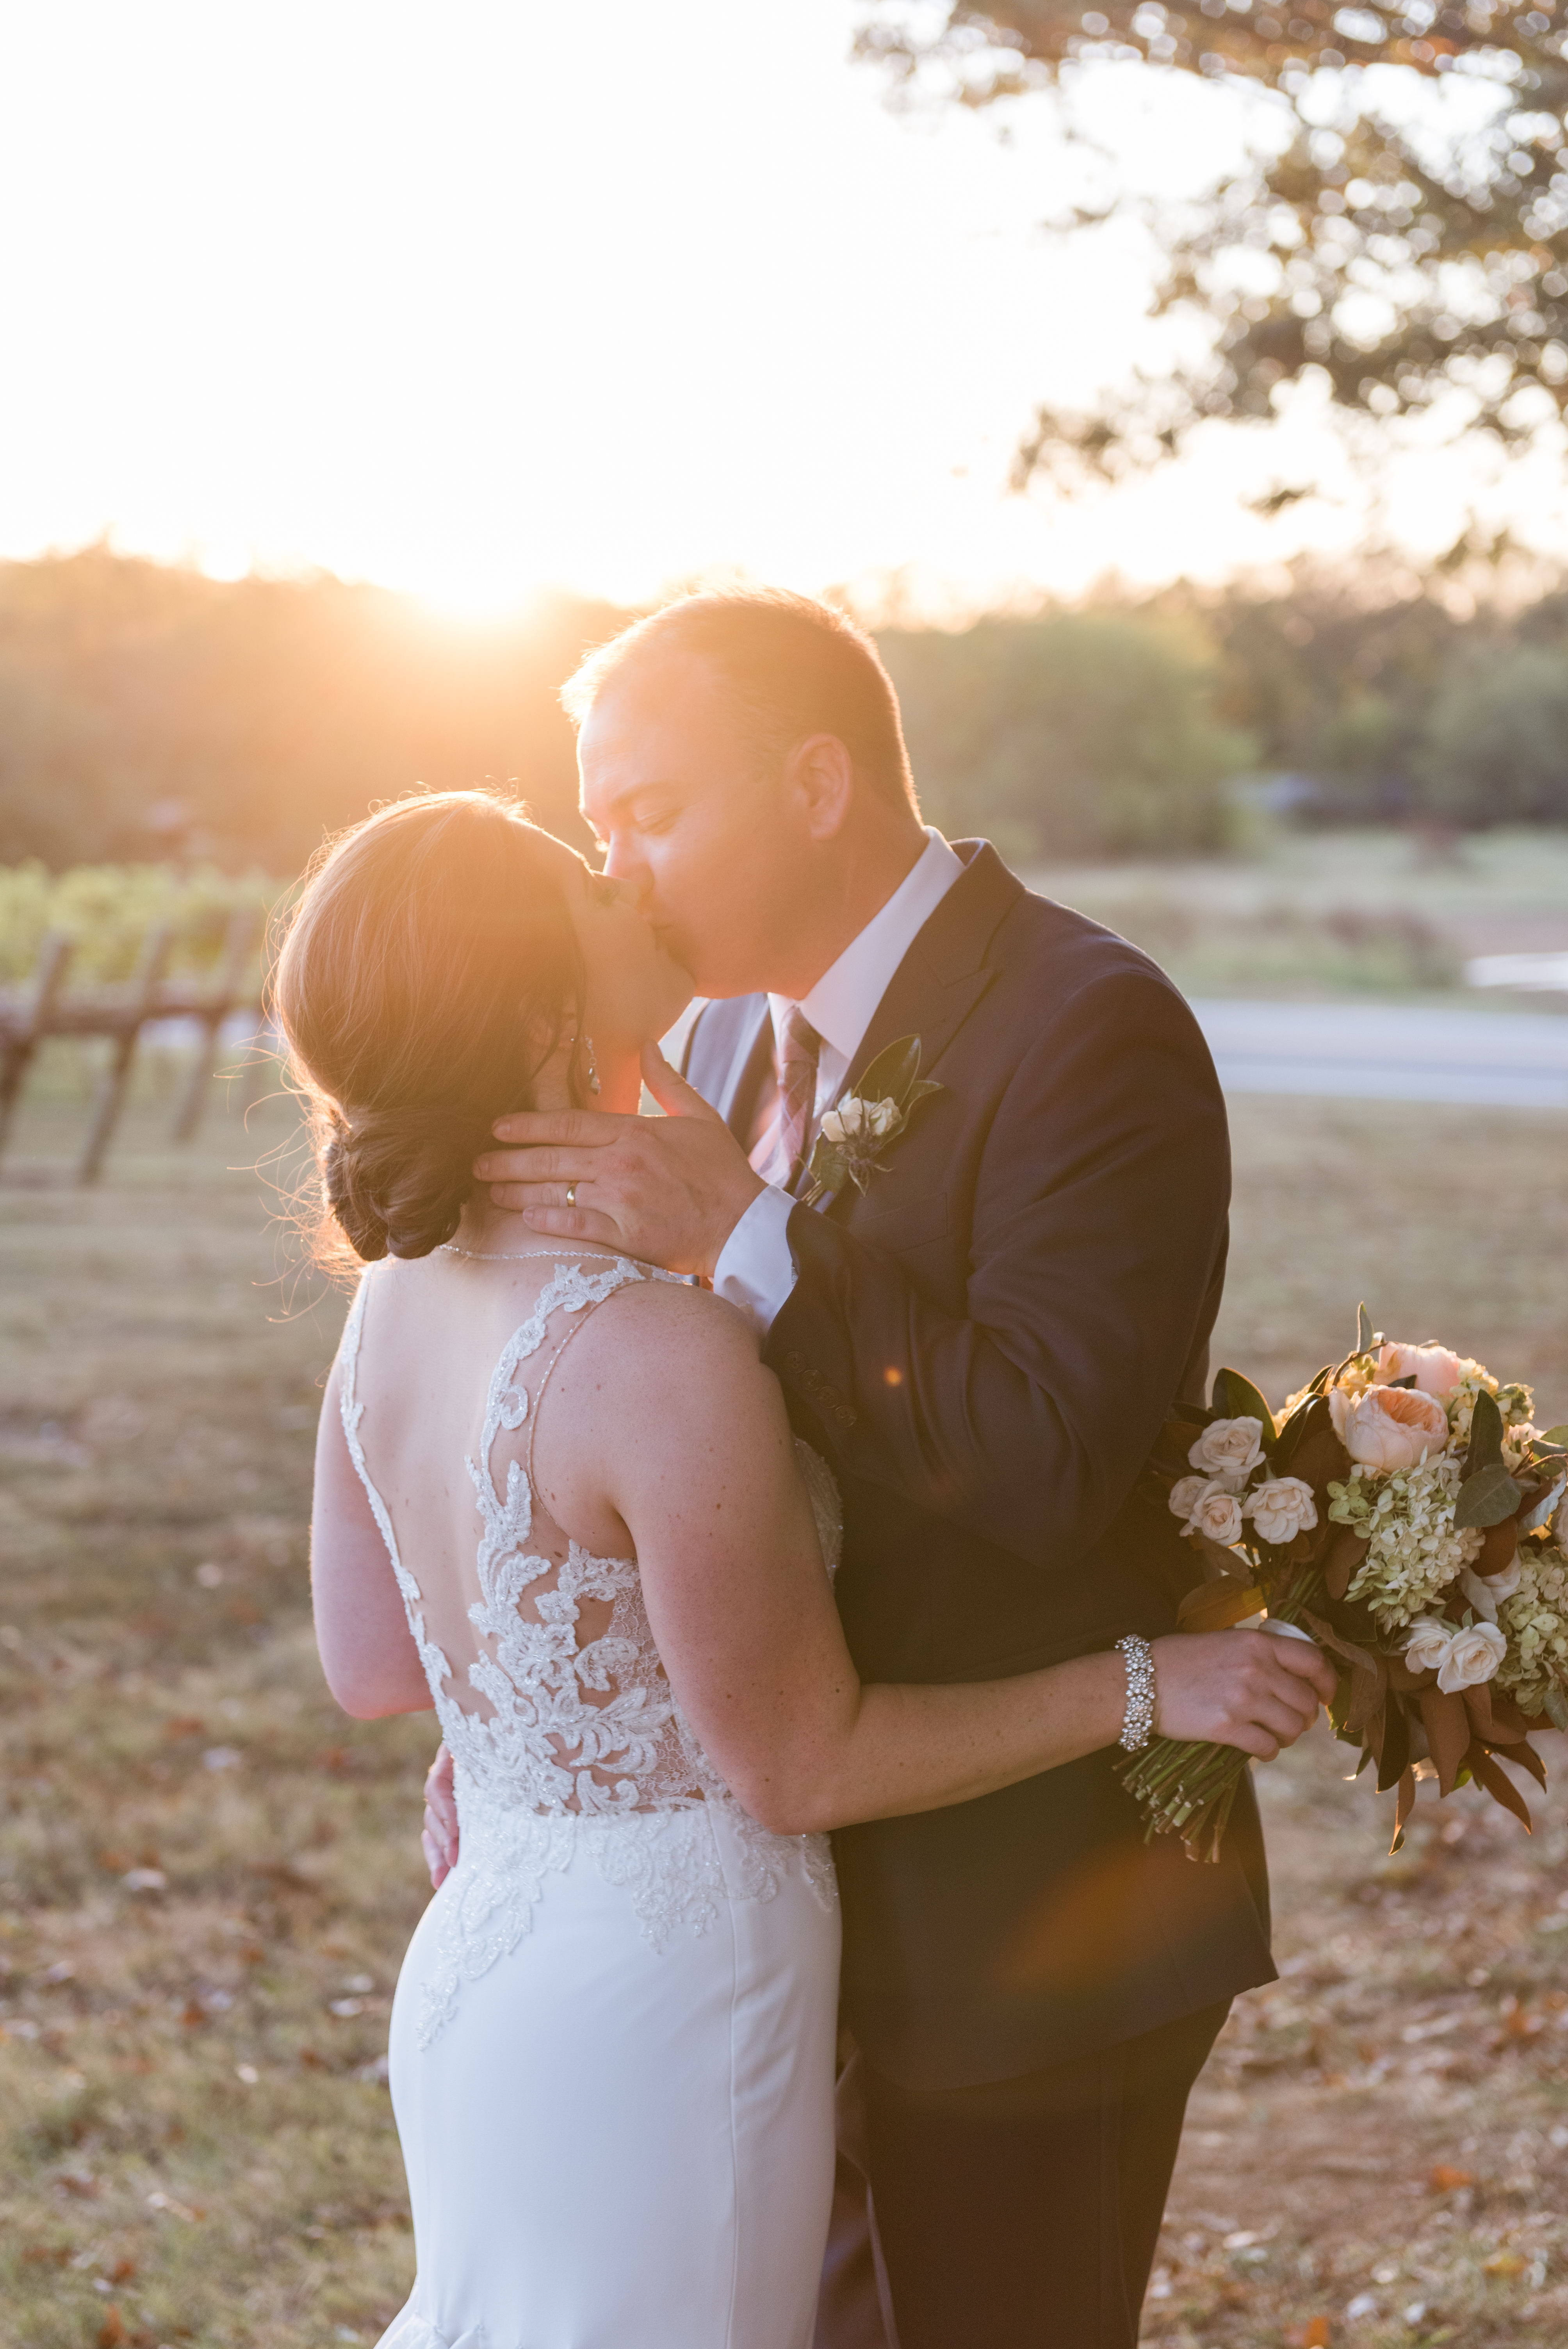 Elegant Fall Wedding at Arrington Vineyards Arrington, Tennessee